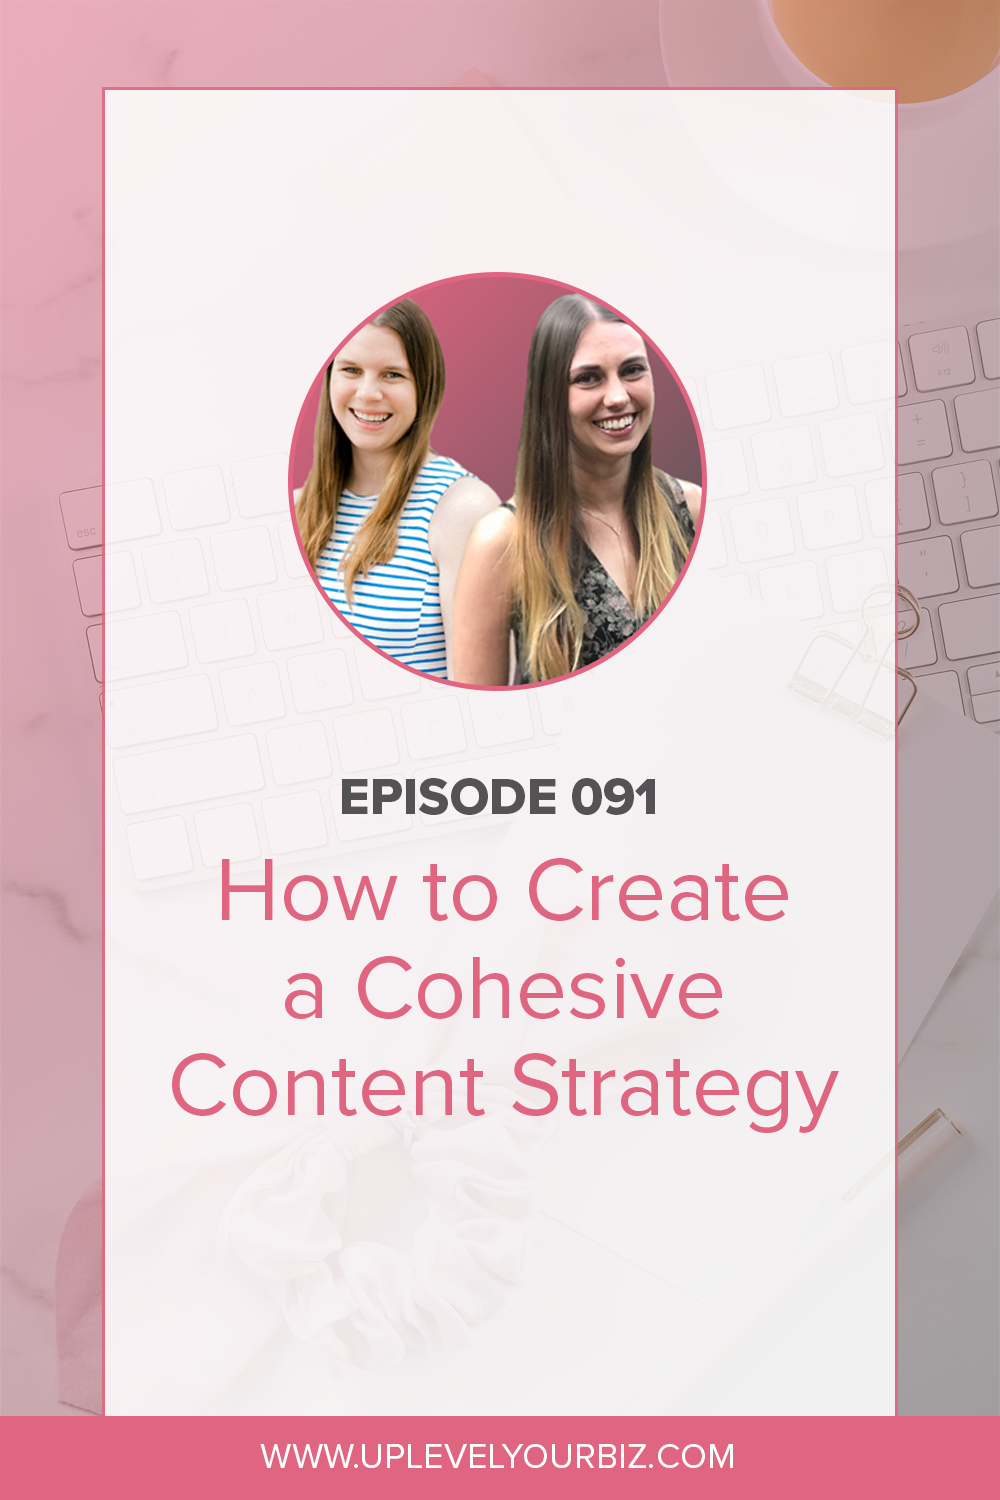 Episode #91 | How to Create a Cohesive Content Strategy